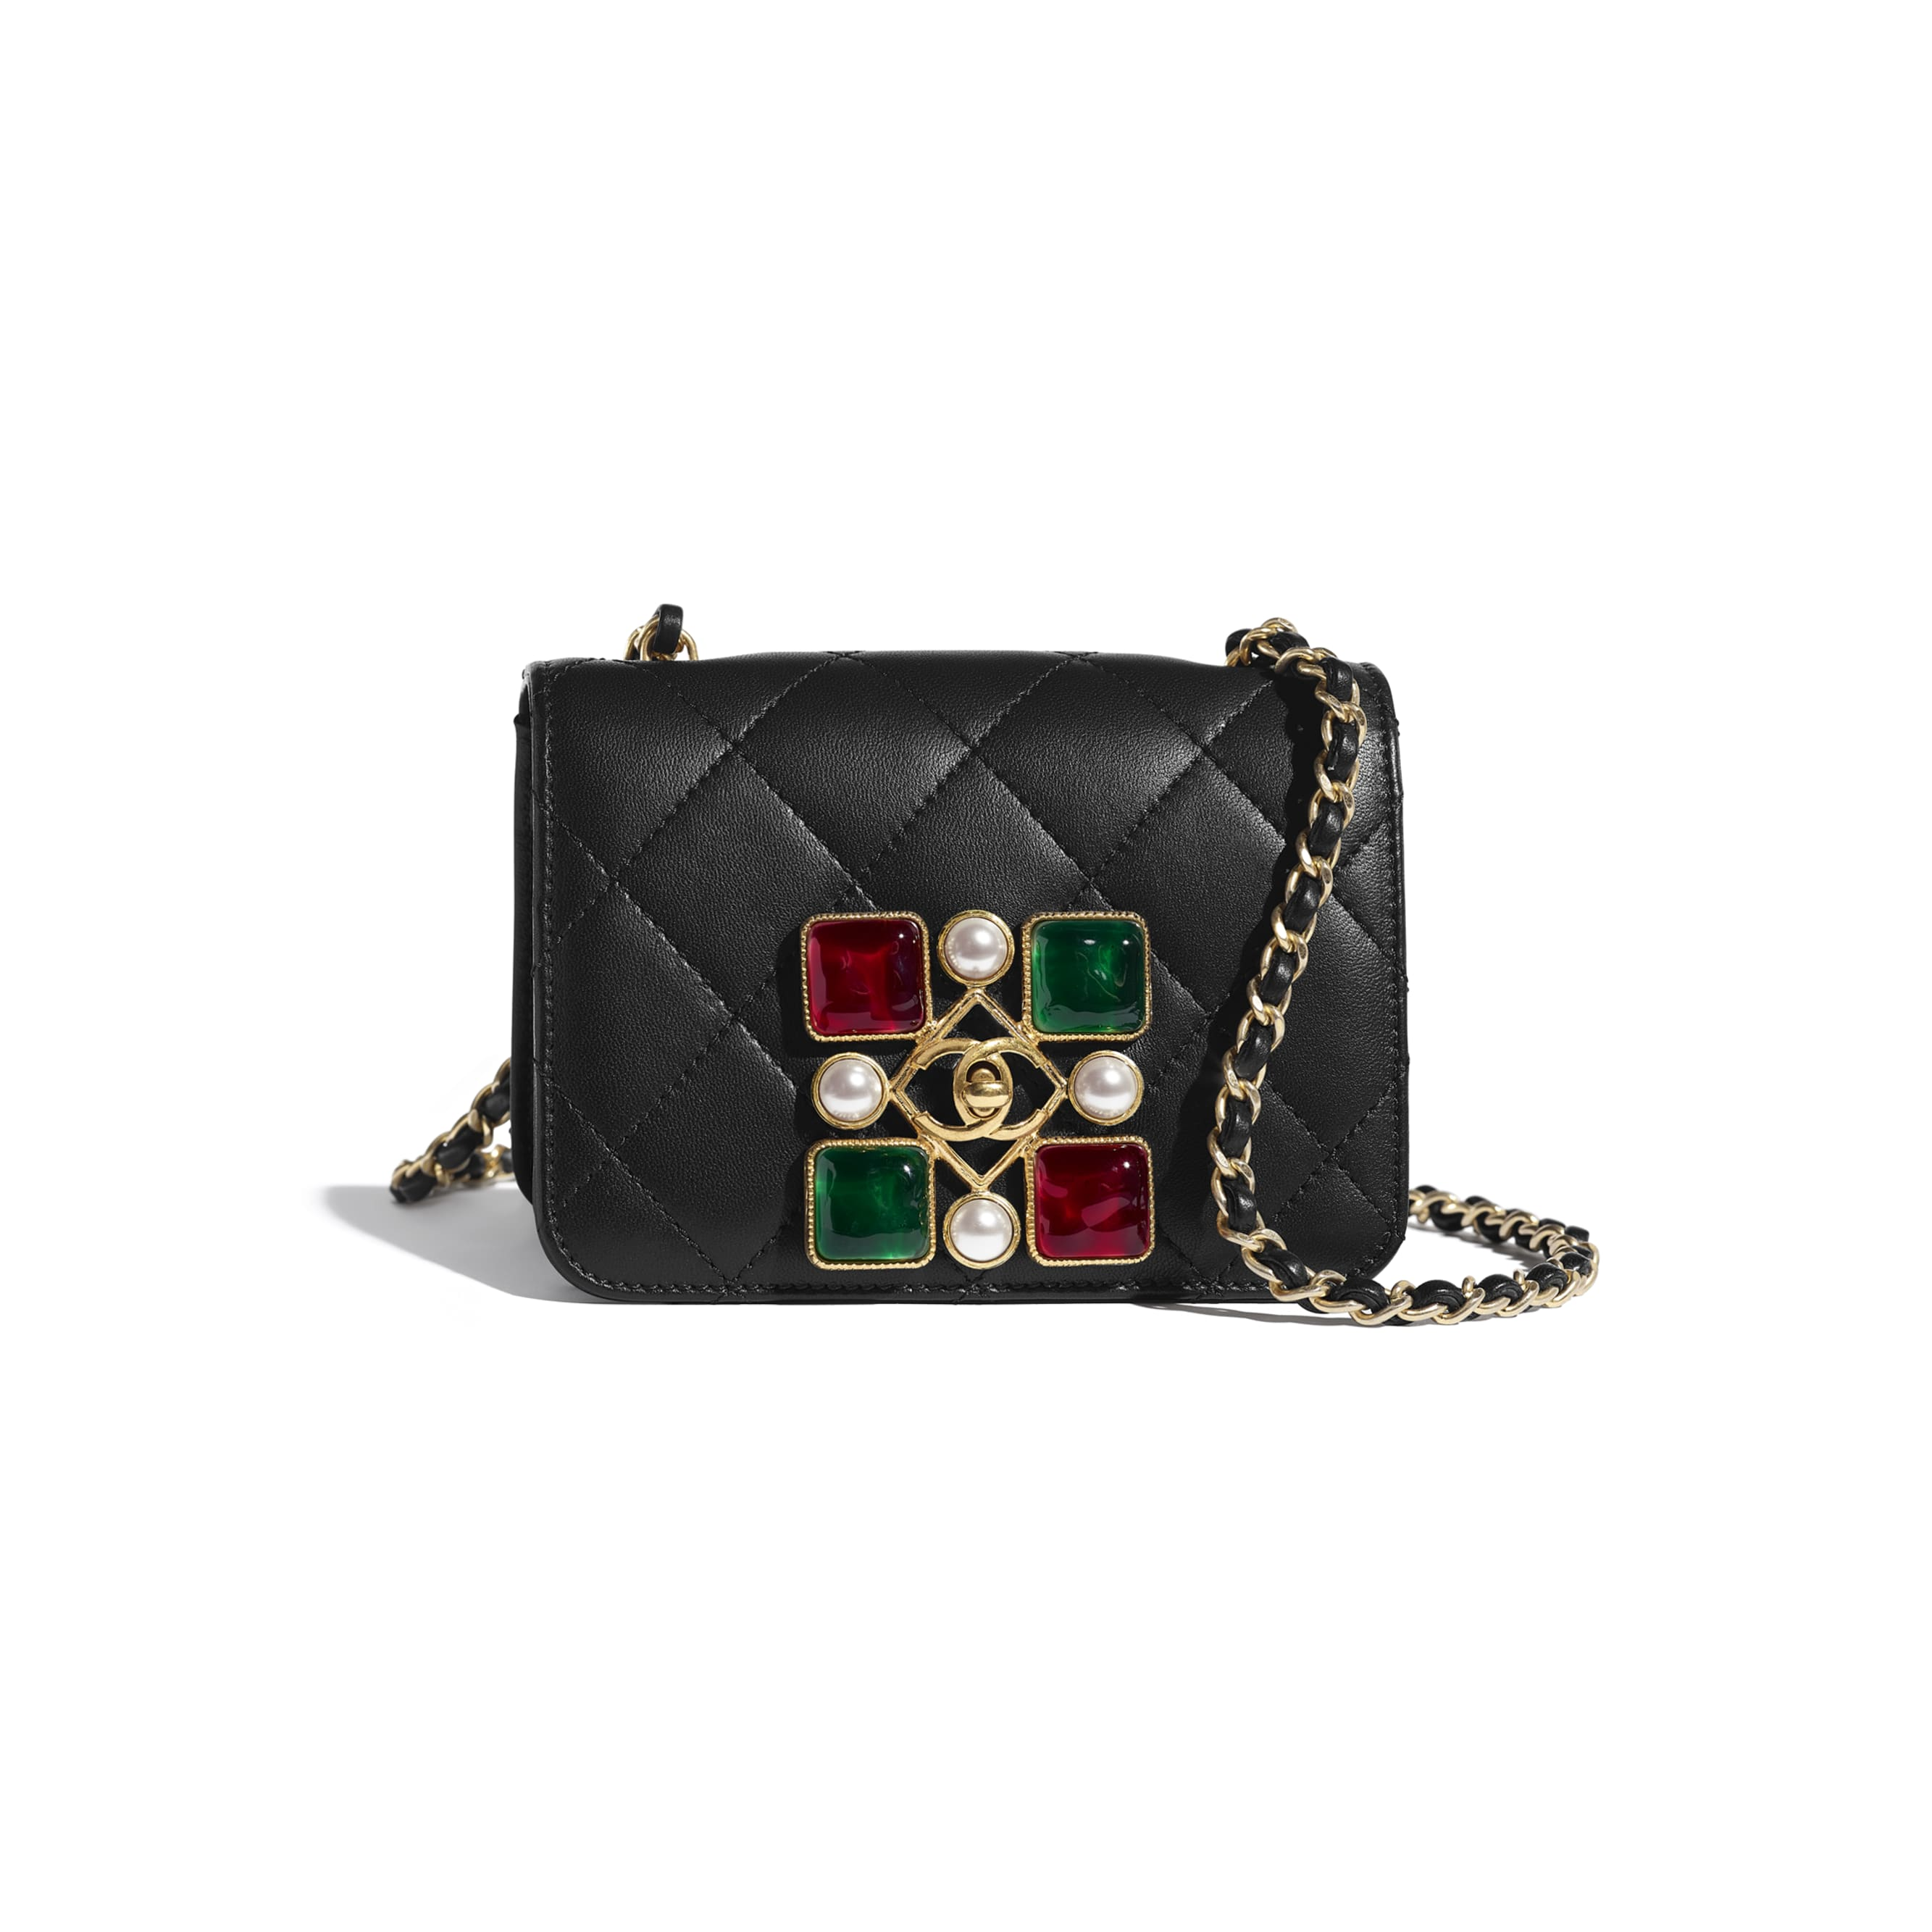 Small Flap Bag - Black, Red & Green - Calfskin, Crystal Pearls, Resin & Gold-Tone Metal - CHANEL - Default view - see standard sized version